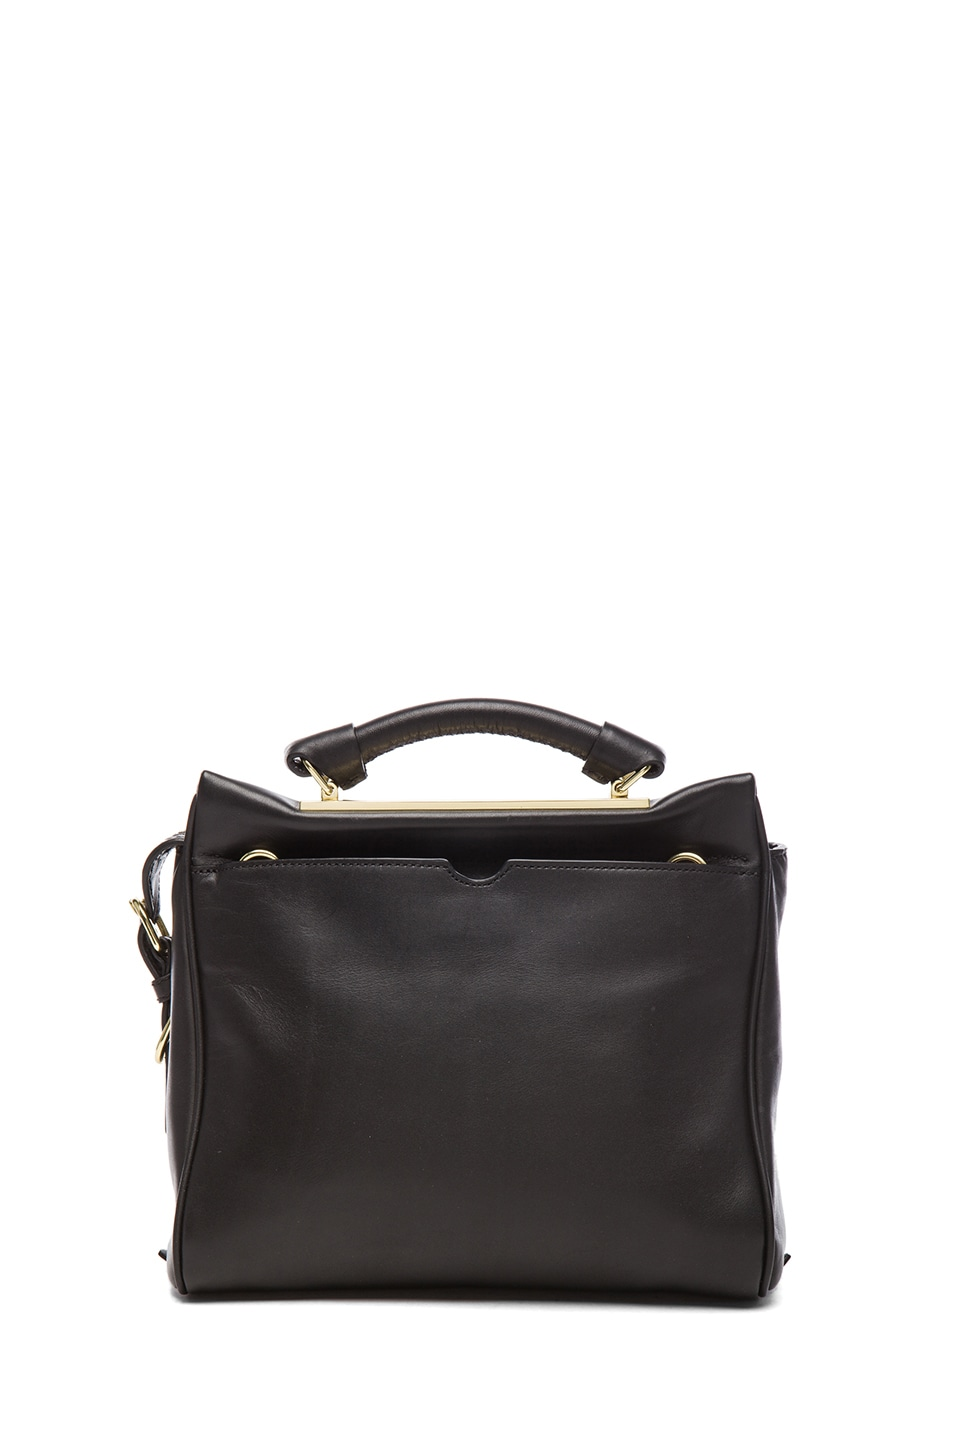 Image 2 of 3.1 phillip lim Small Ryder Satchel in Black